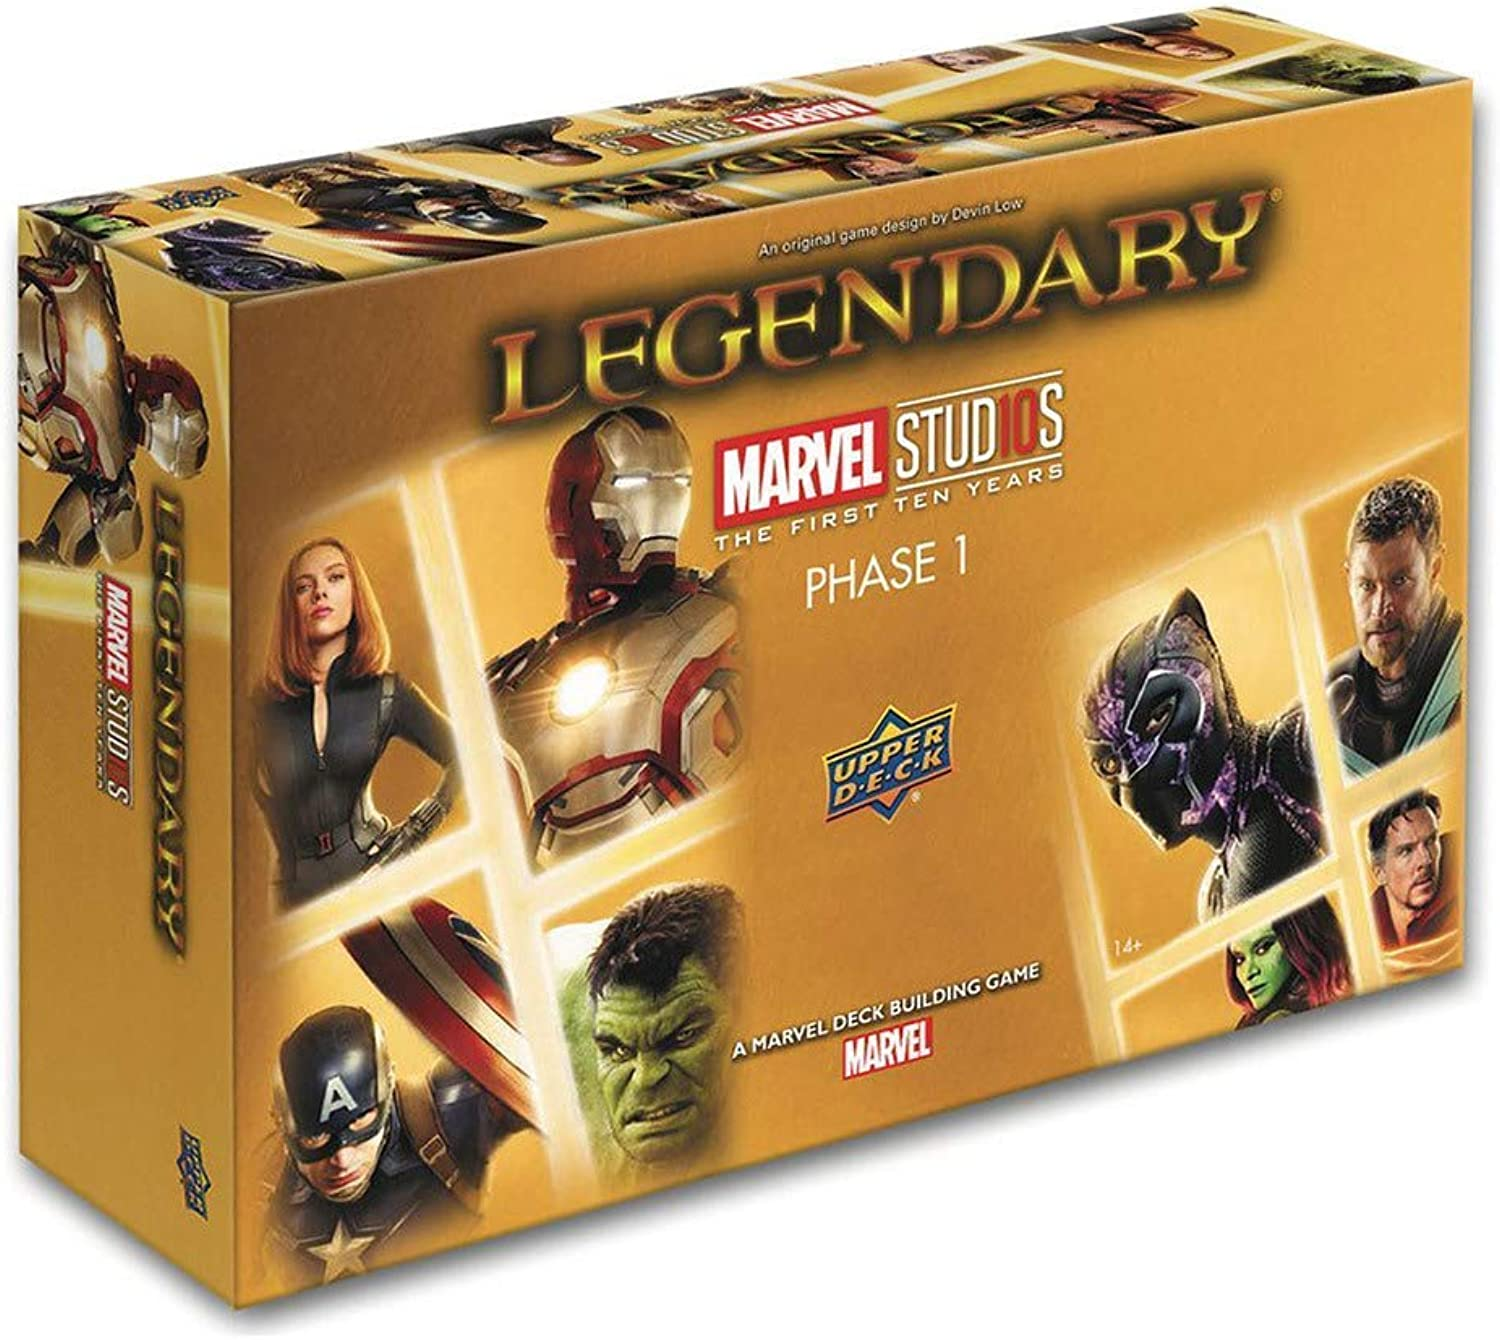 Upper Deck UPD90291 Legendary  Marvel Studios 10th Anniversary Deck Building Card Game, Mixed Colours